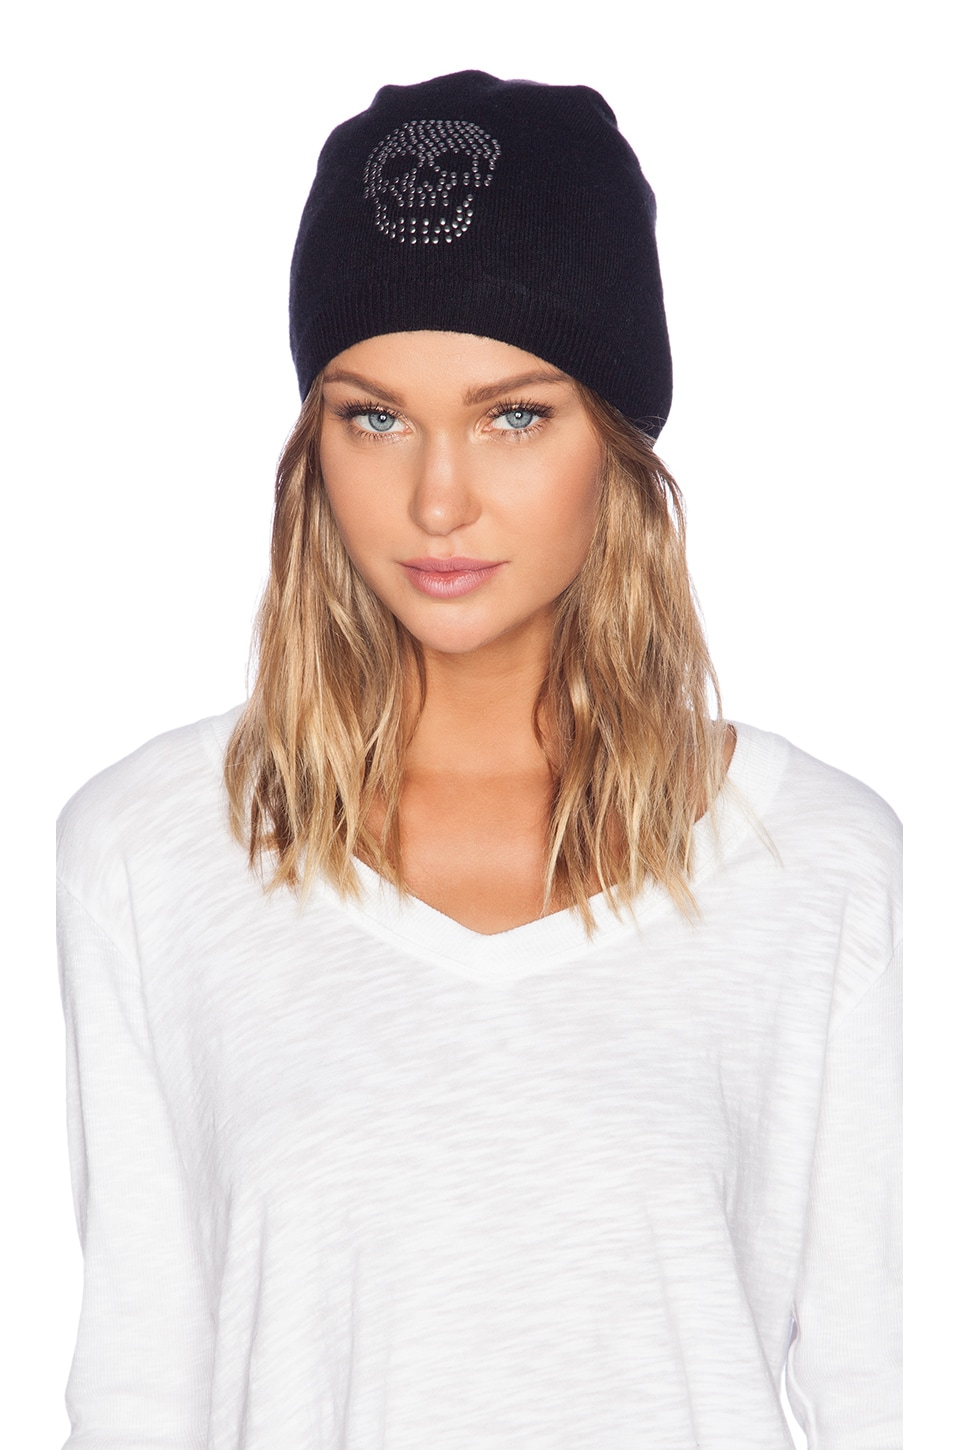 Autumn Cashmere Studded Skull Beanie in Black